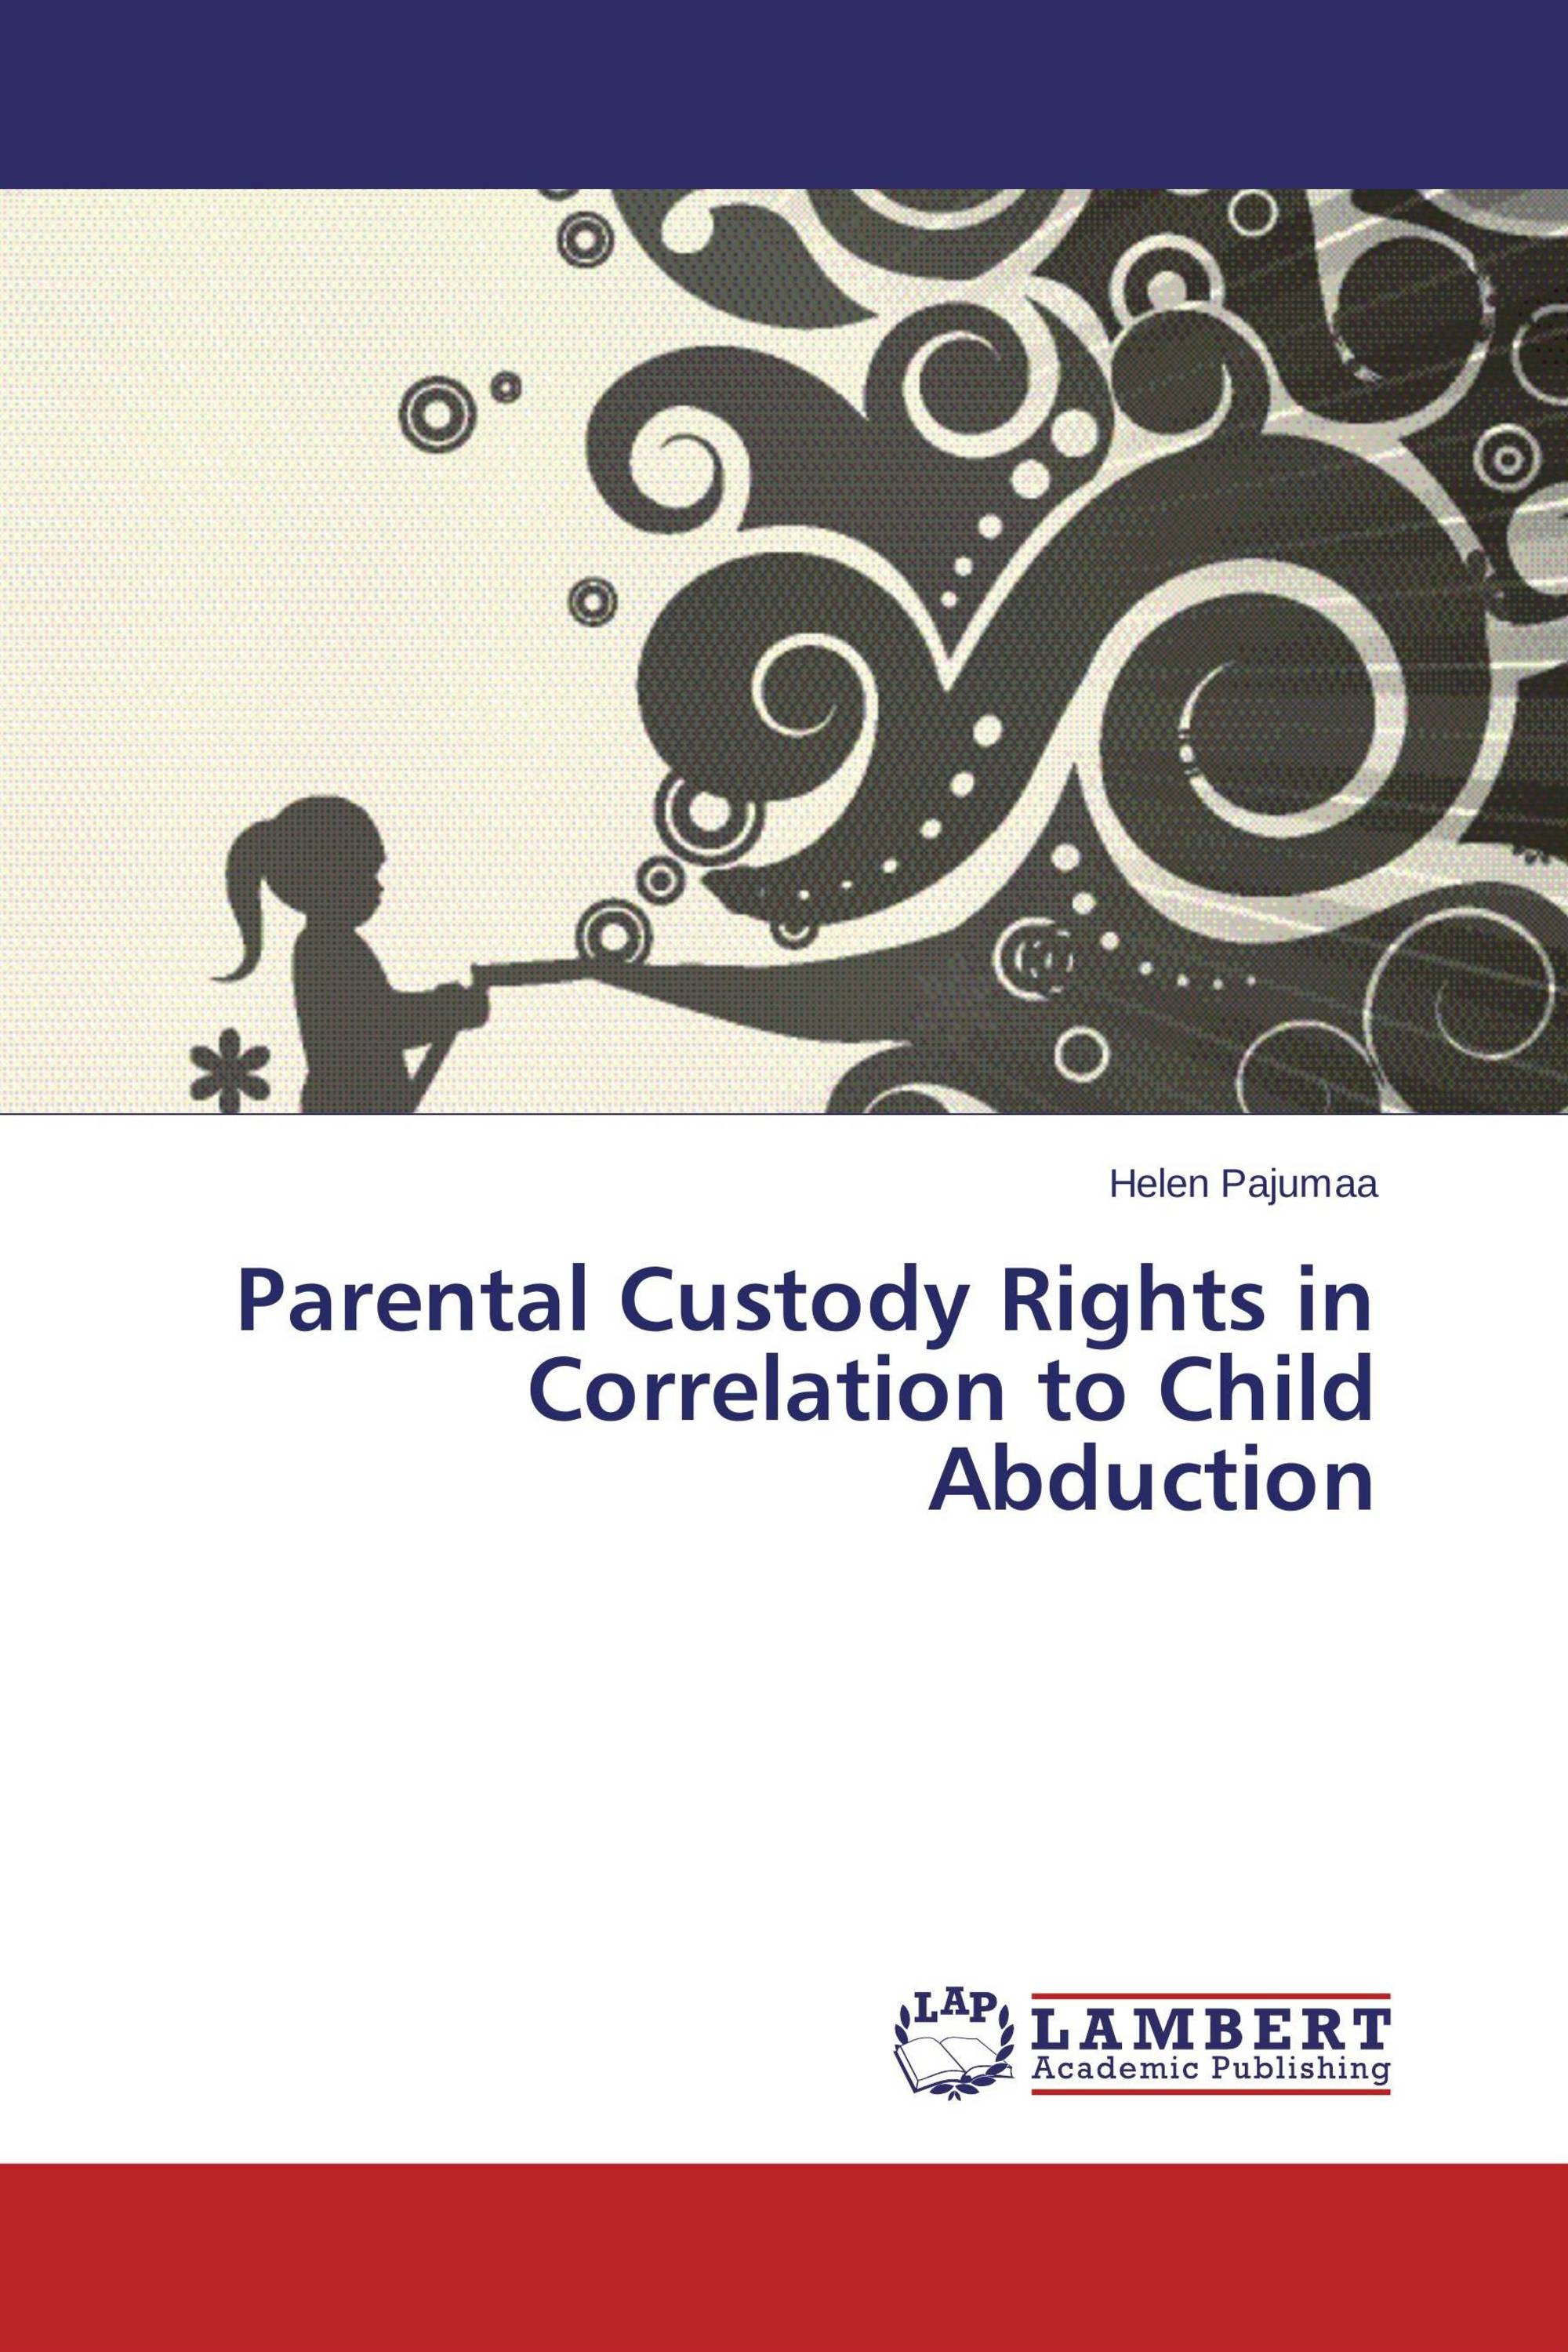 Parental Custody Rights in Correlation to Child Abduction